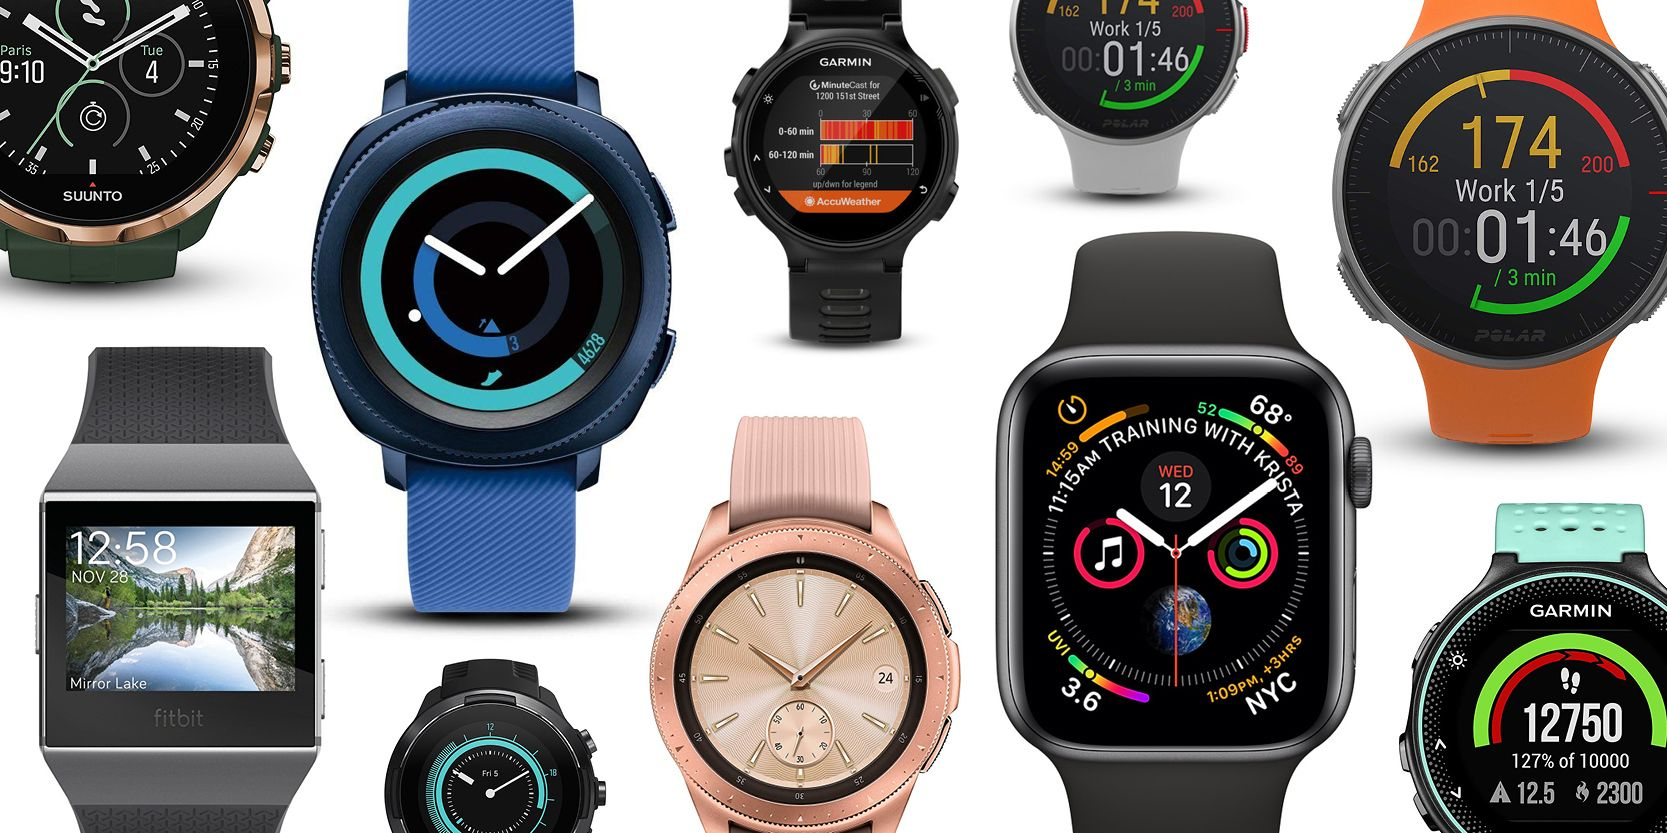 9 Easy Ways to Keep Your Watches Looking Brand New in 2019